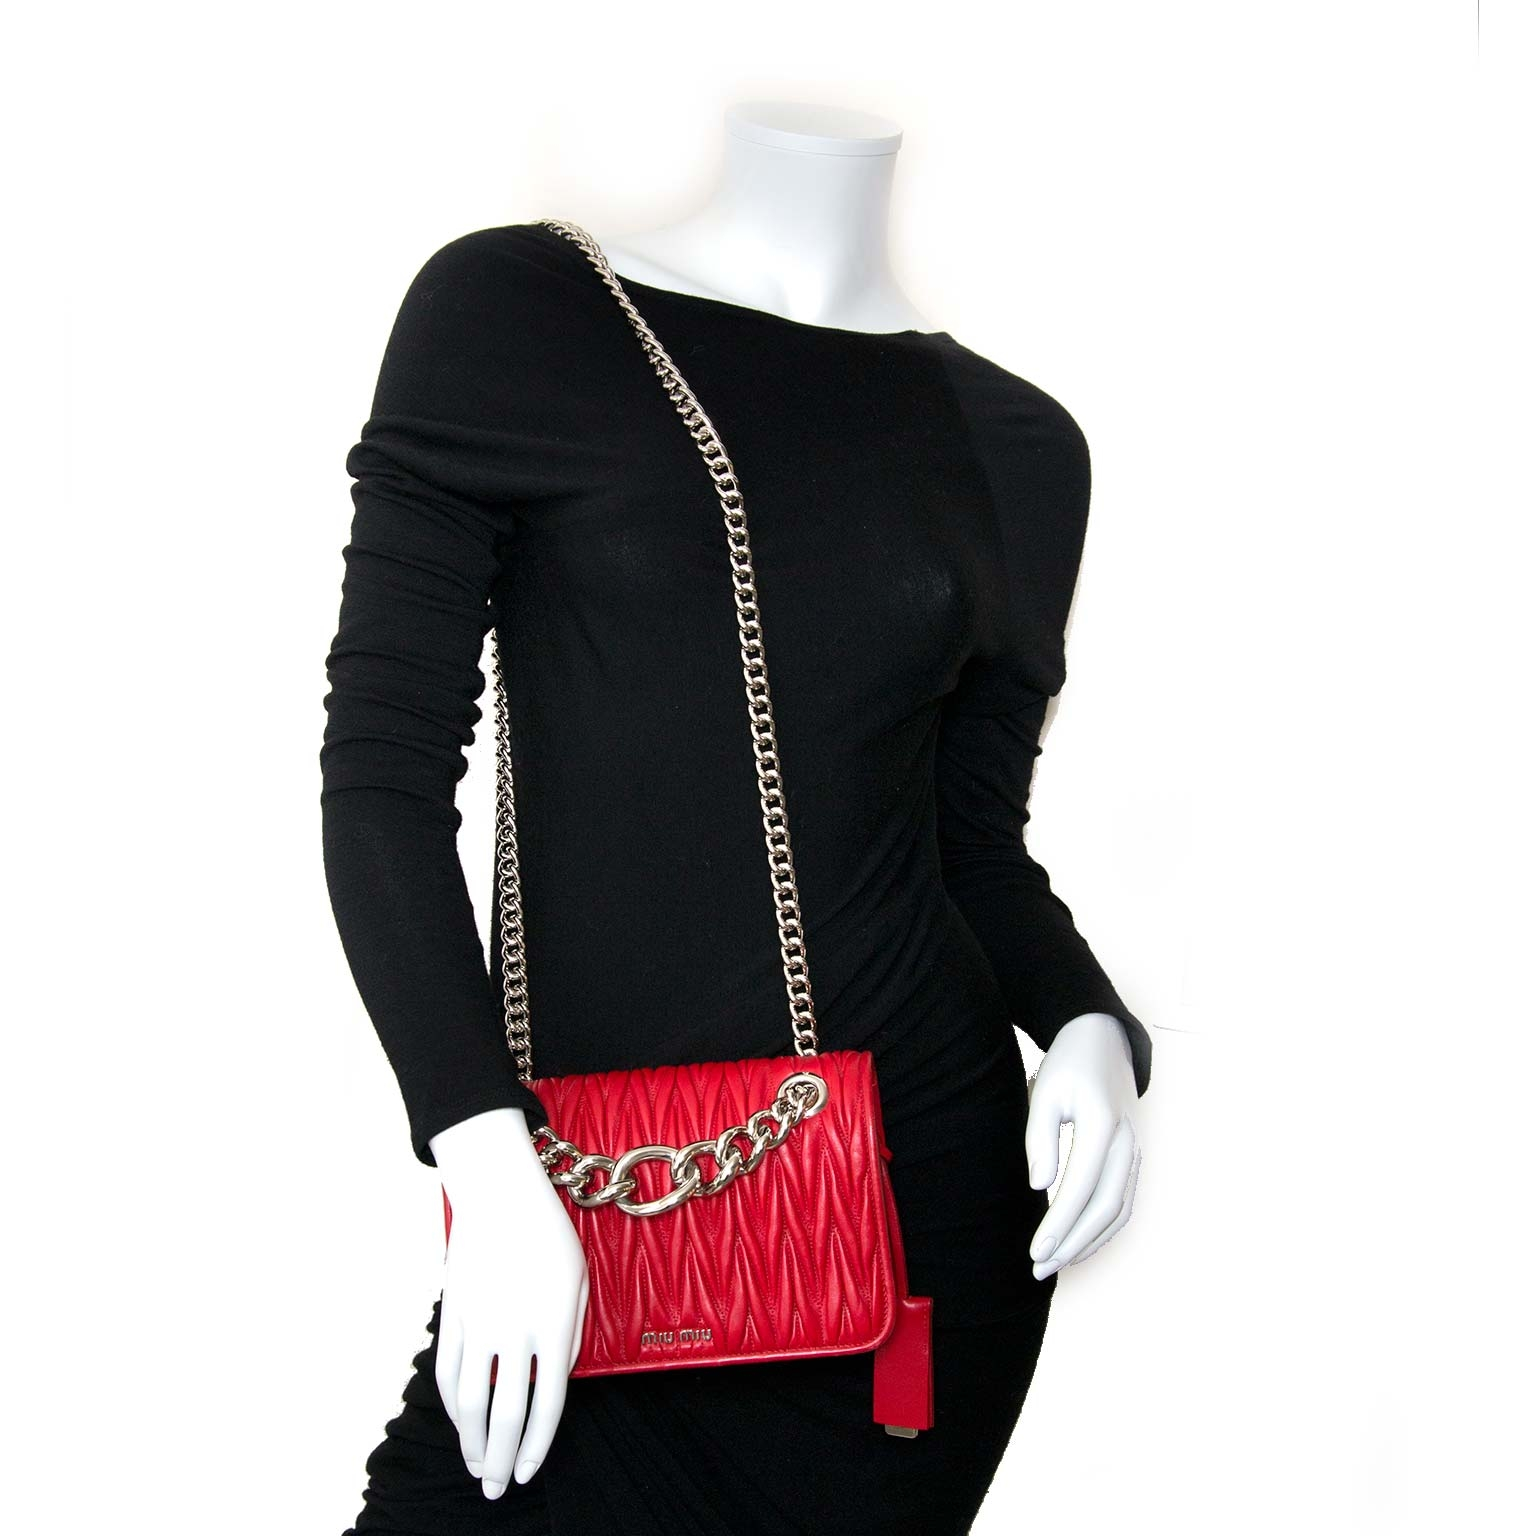 miu miu nappa matelasse club red shoulder bag now for sale at labellov vintage fashion webshop belgium